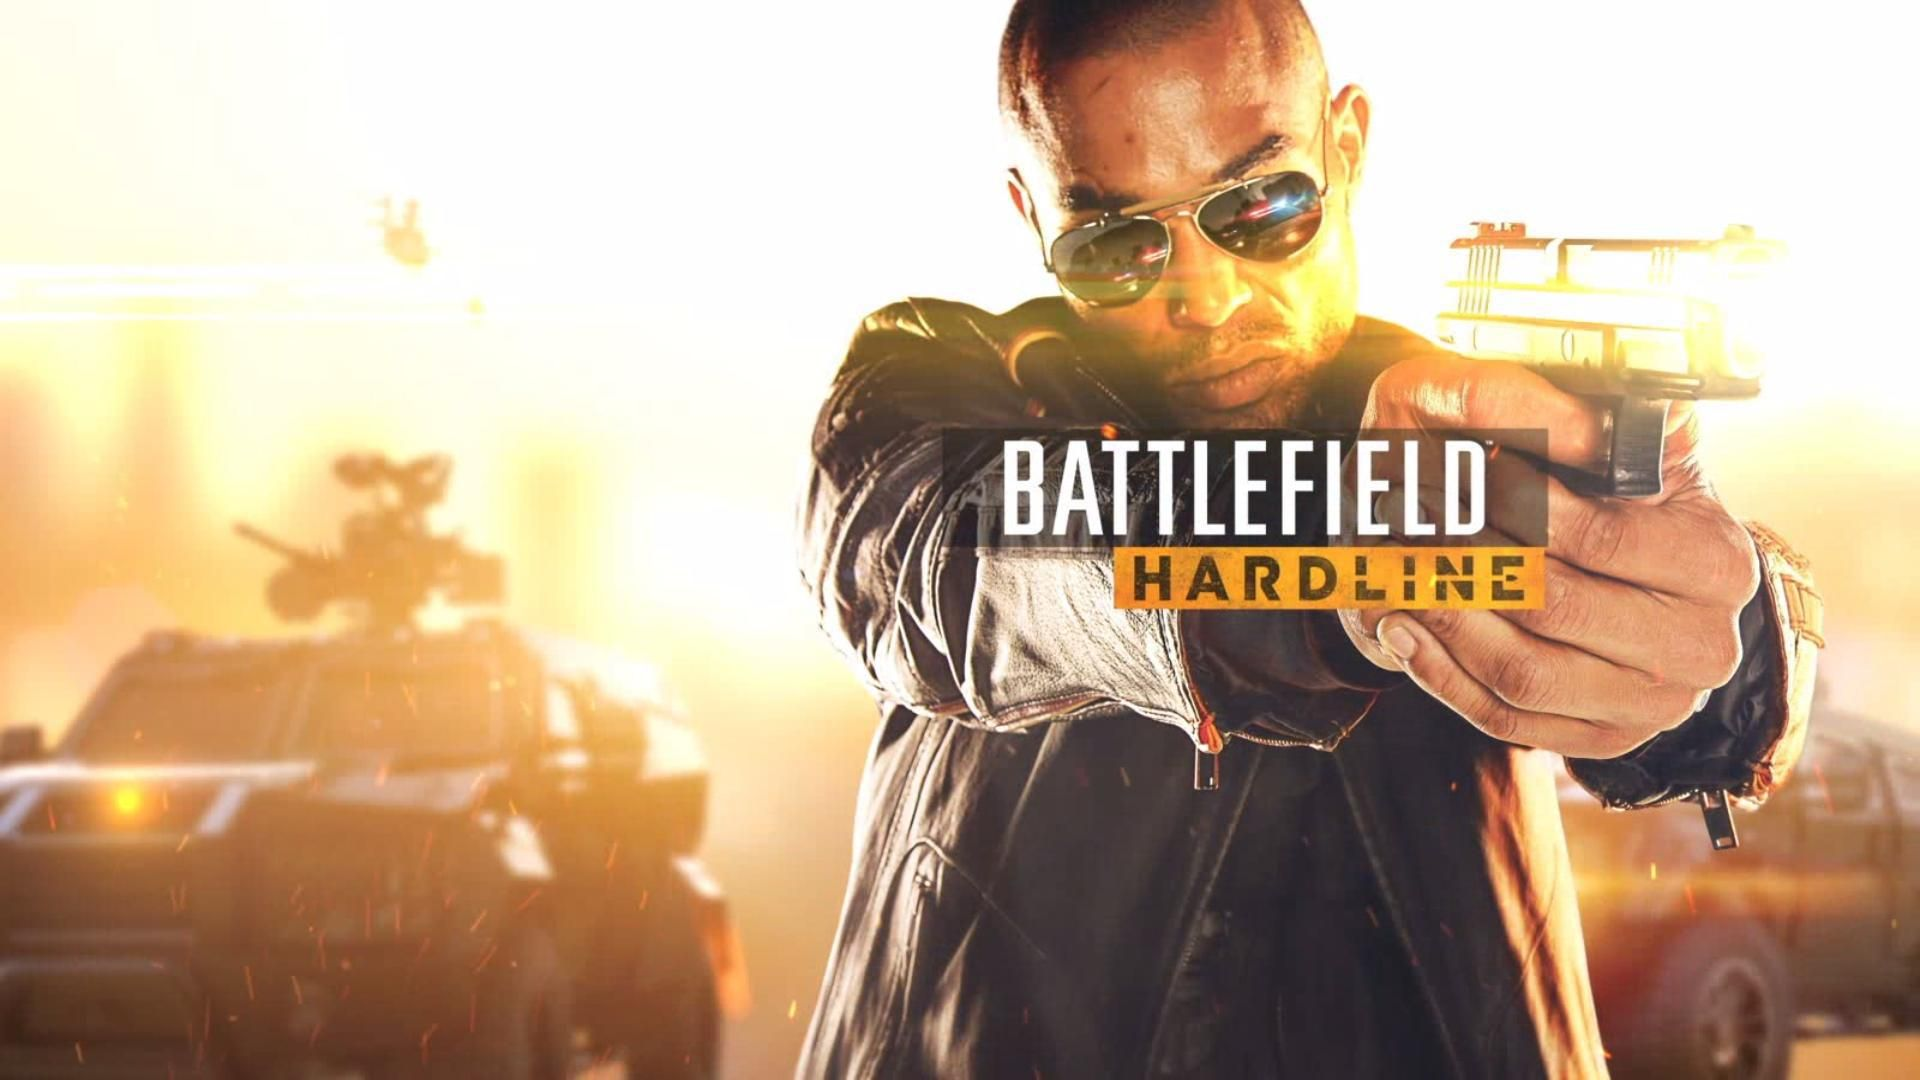 Battlefield Hardline Computer Wallpapers Desktop Backgrounds 1920x1080 Wallpaper 49